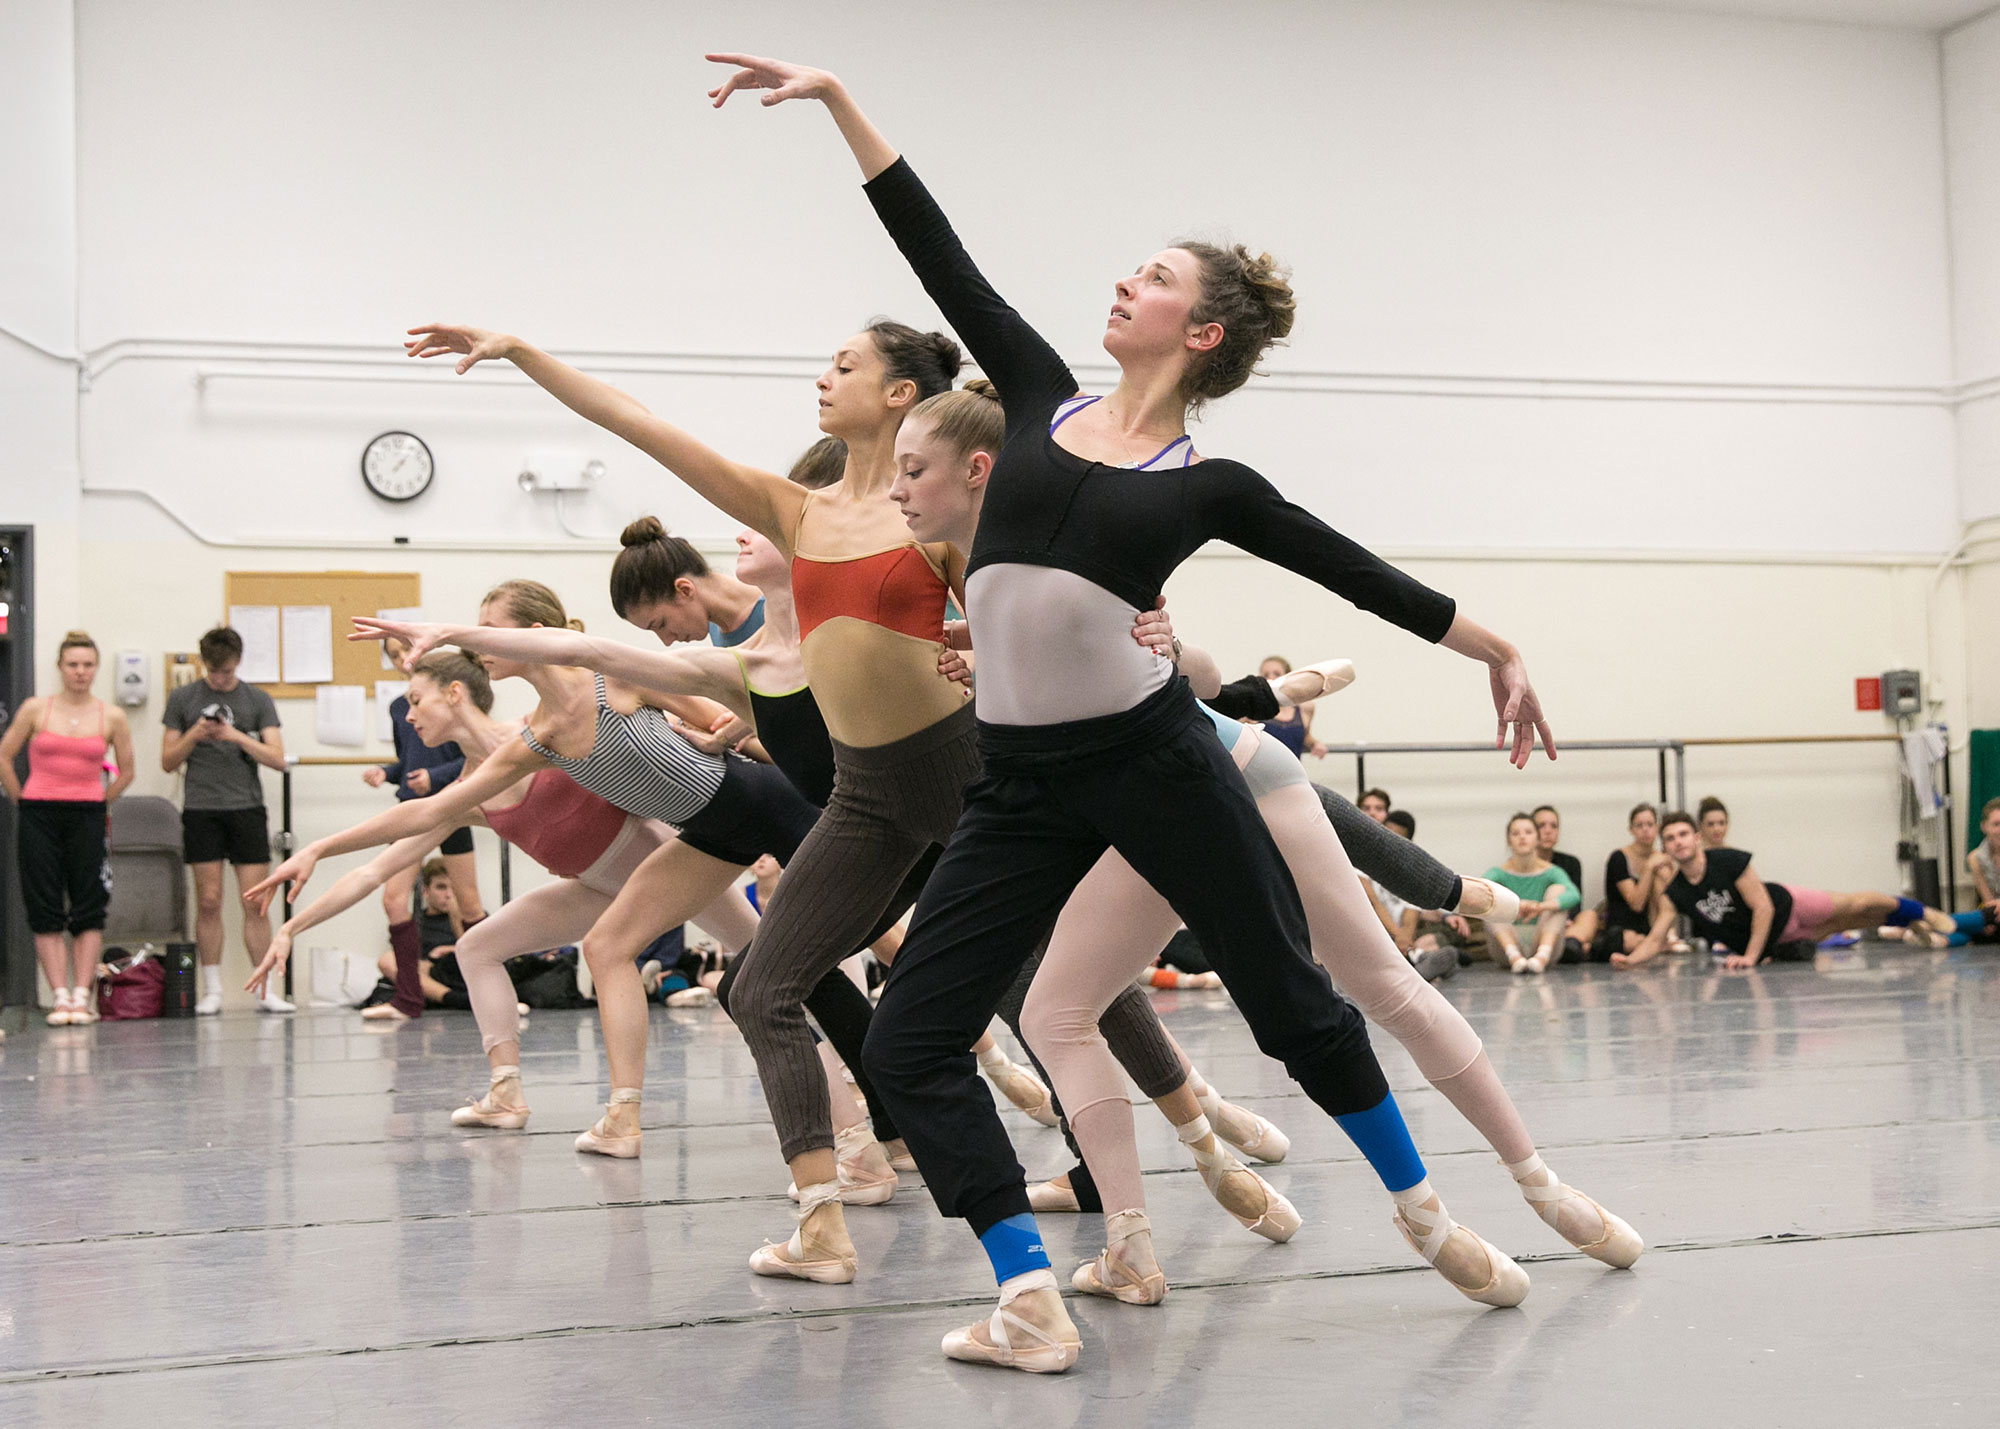 The Most Incredible Thing: Justin Peck Goes Big at City Ballet